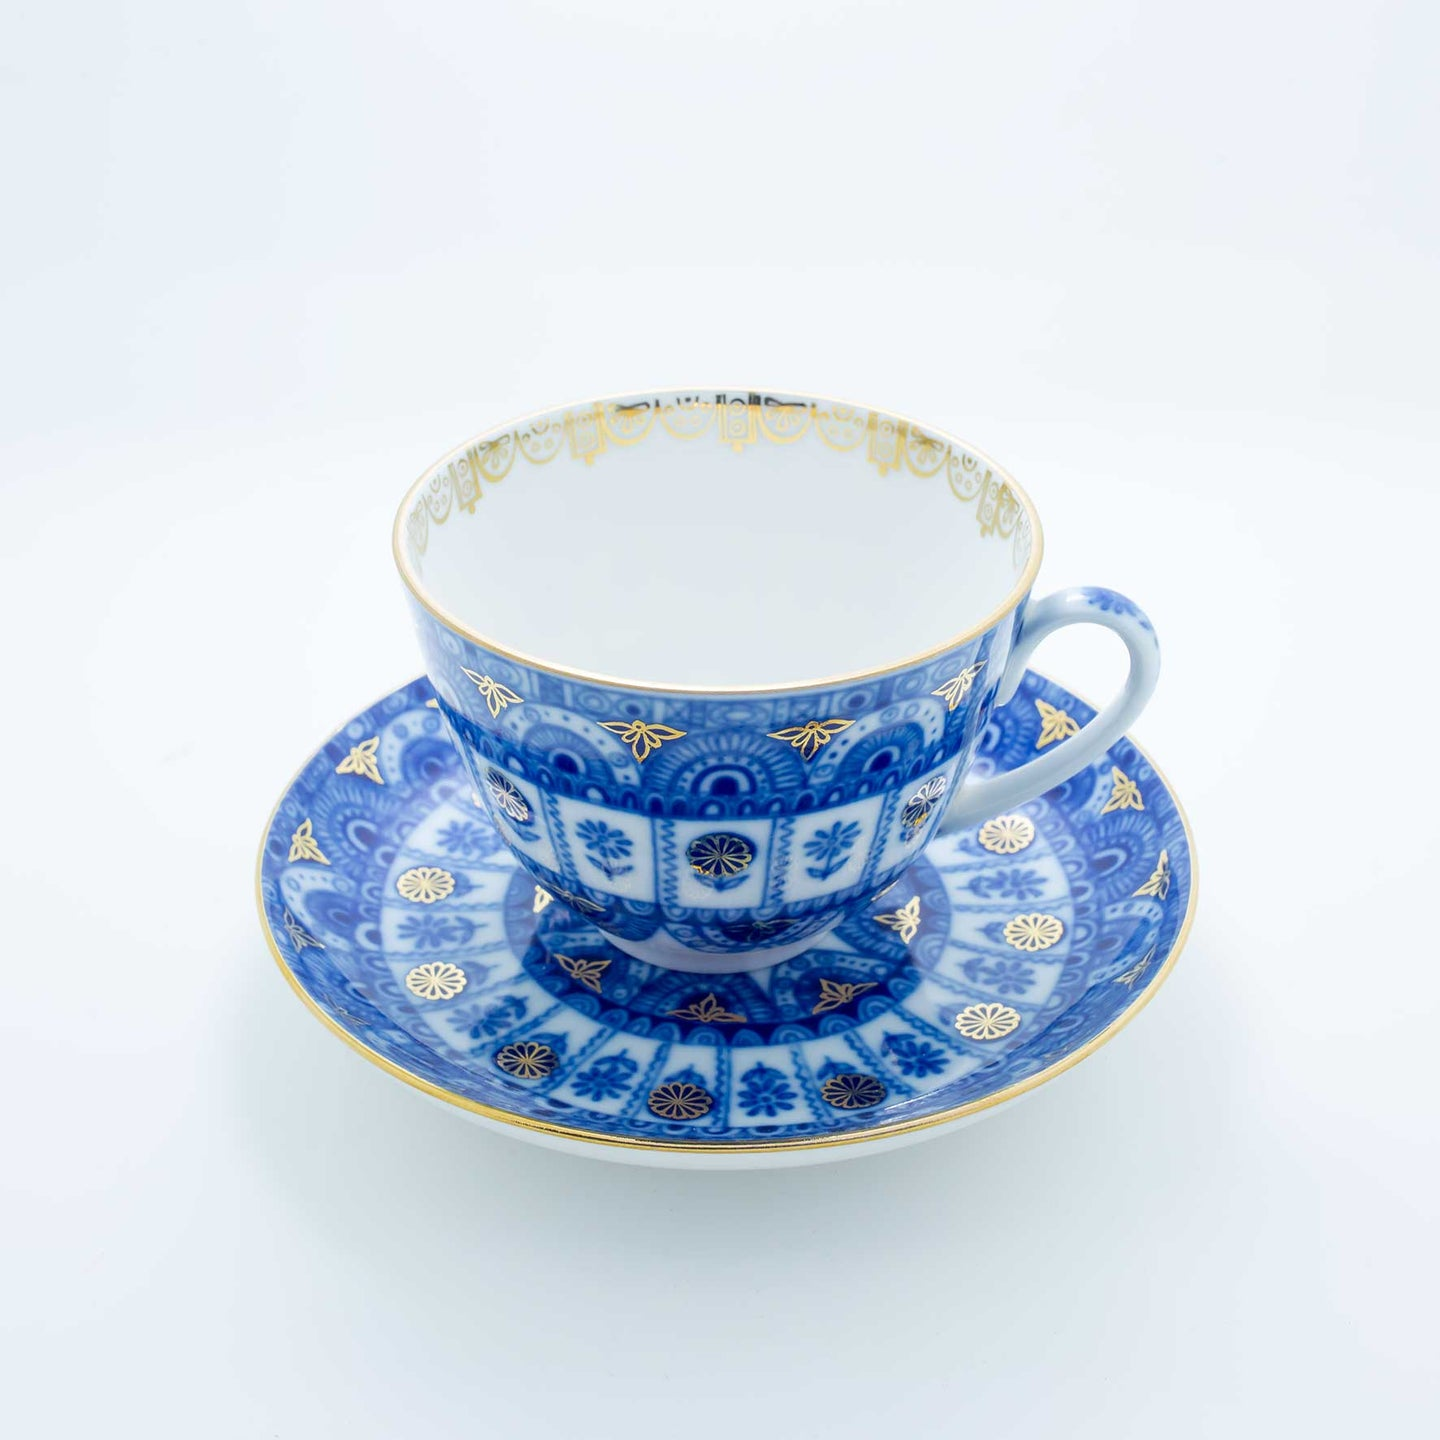 Refresh Moment Imperial Porcelain St. Petersburg 1744 Azure Teacup and Saucer